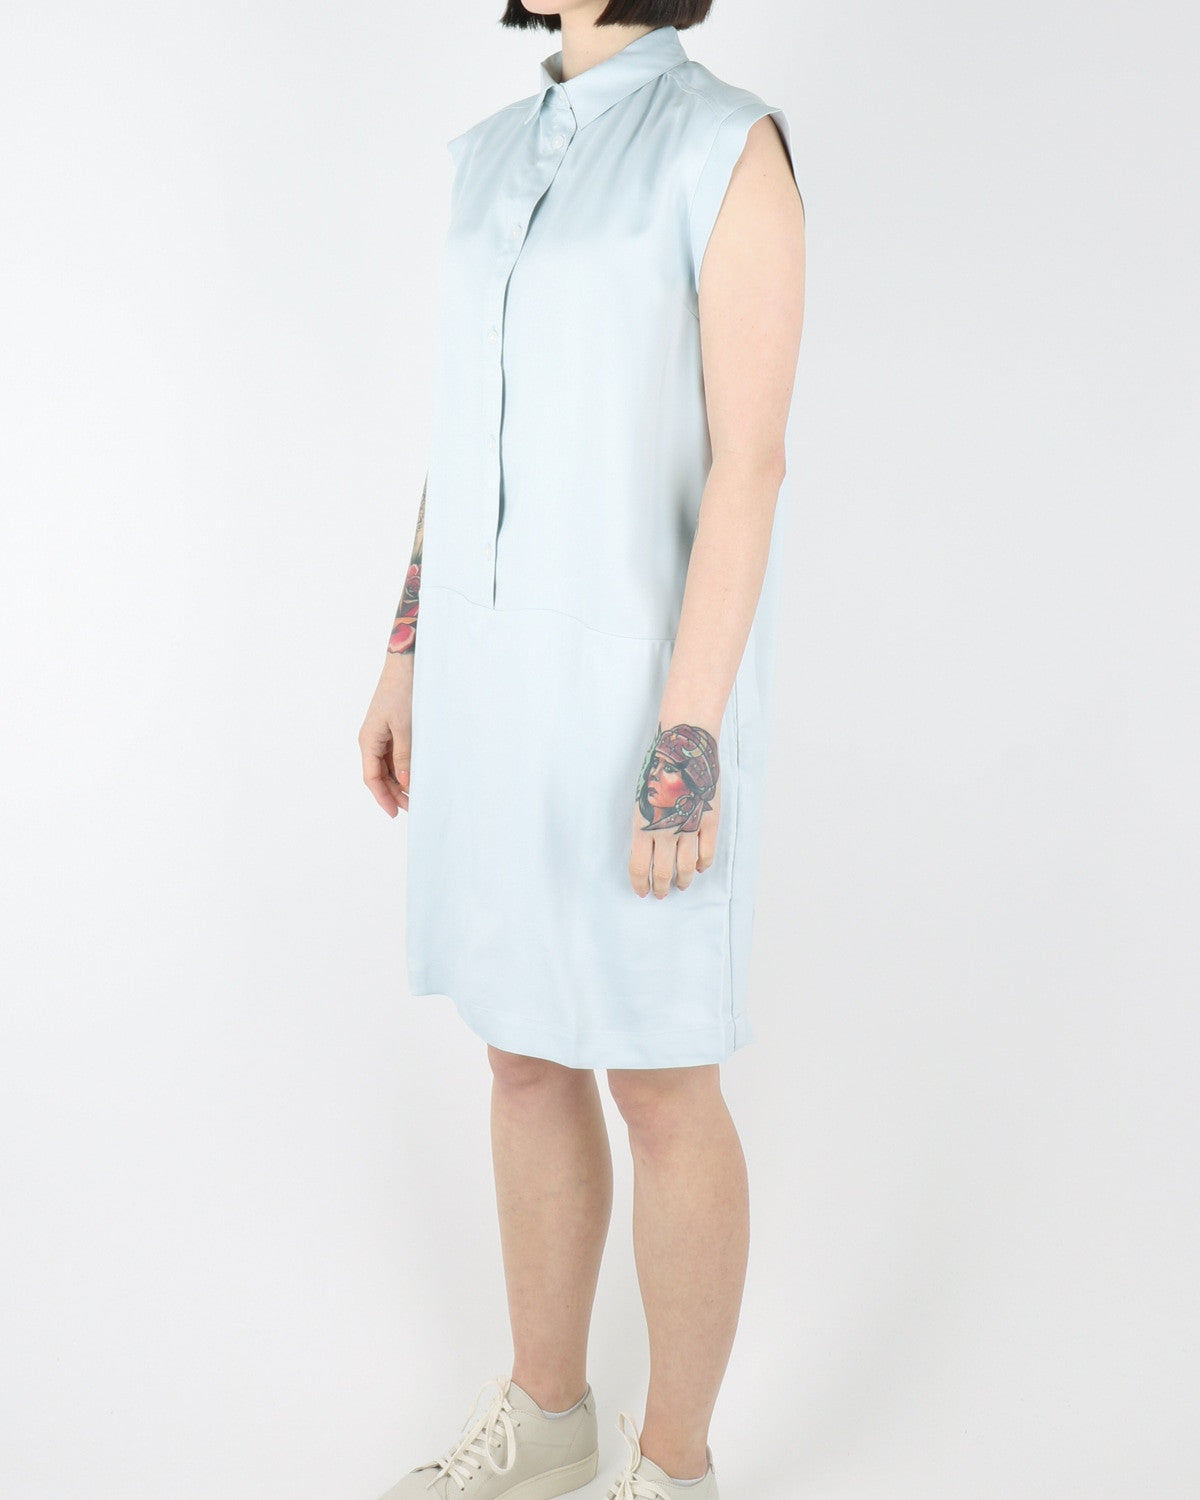 libertine libertine_former dress_sky blue_view_2_3